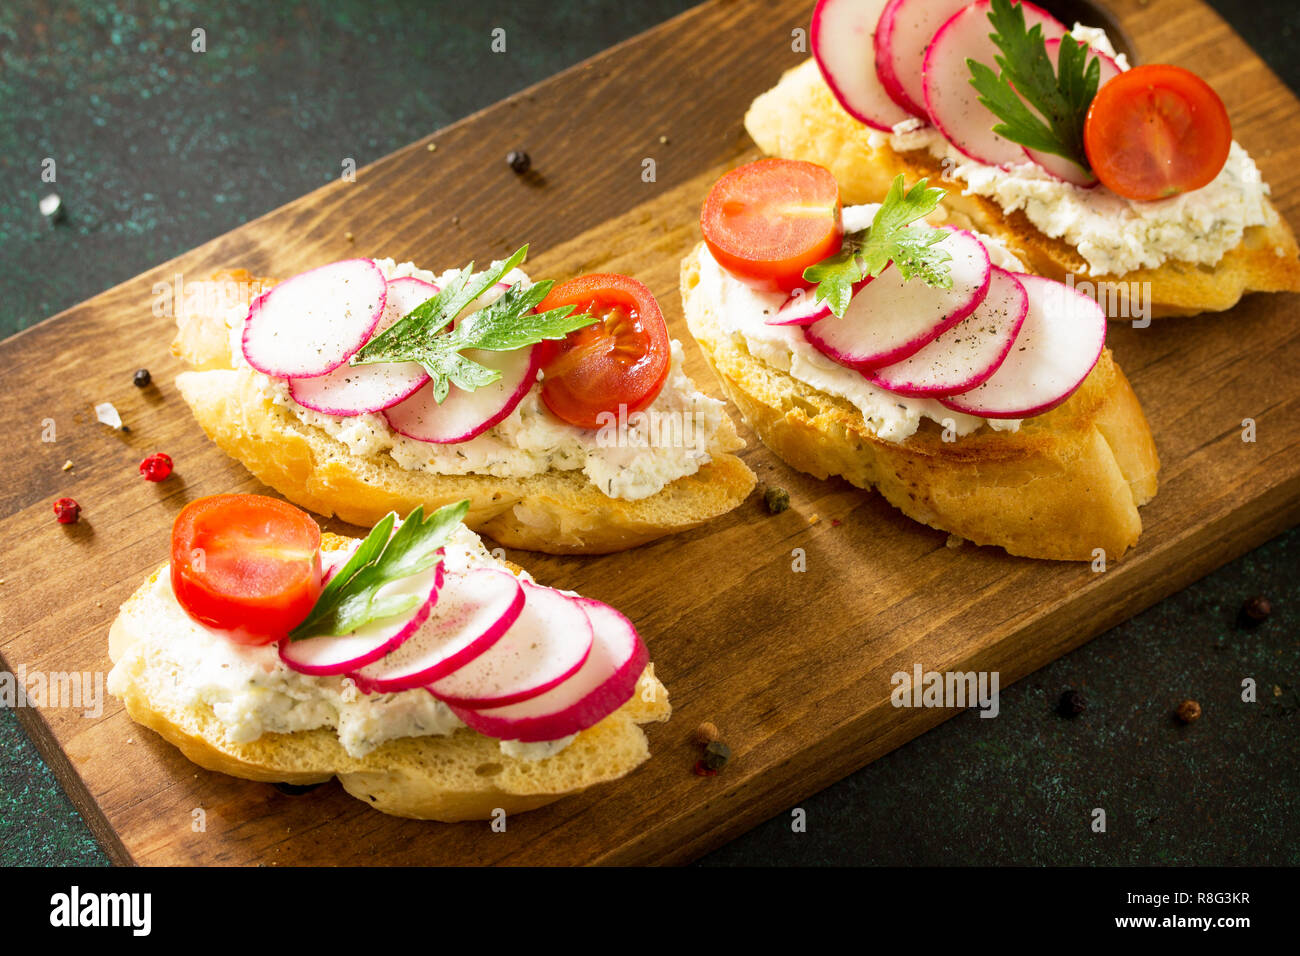 Antipasti snacks set for Wine. Brushetta or Crostini with Toasted Baguette,  Cheese, Radish and Tomatoes served on a rustic wooden board on a stone ta - Stock Image